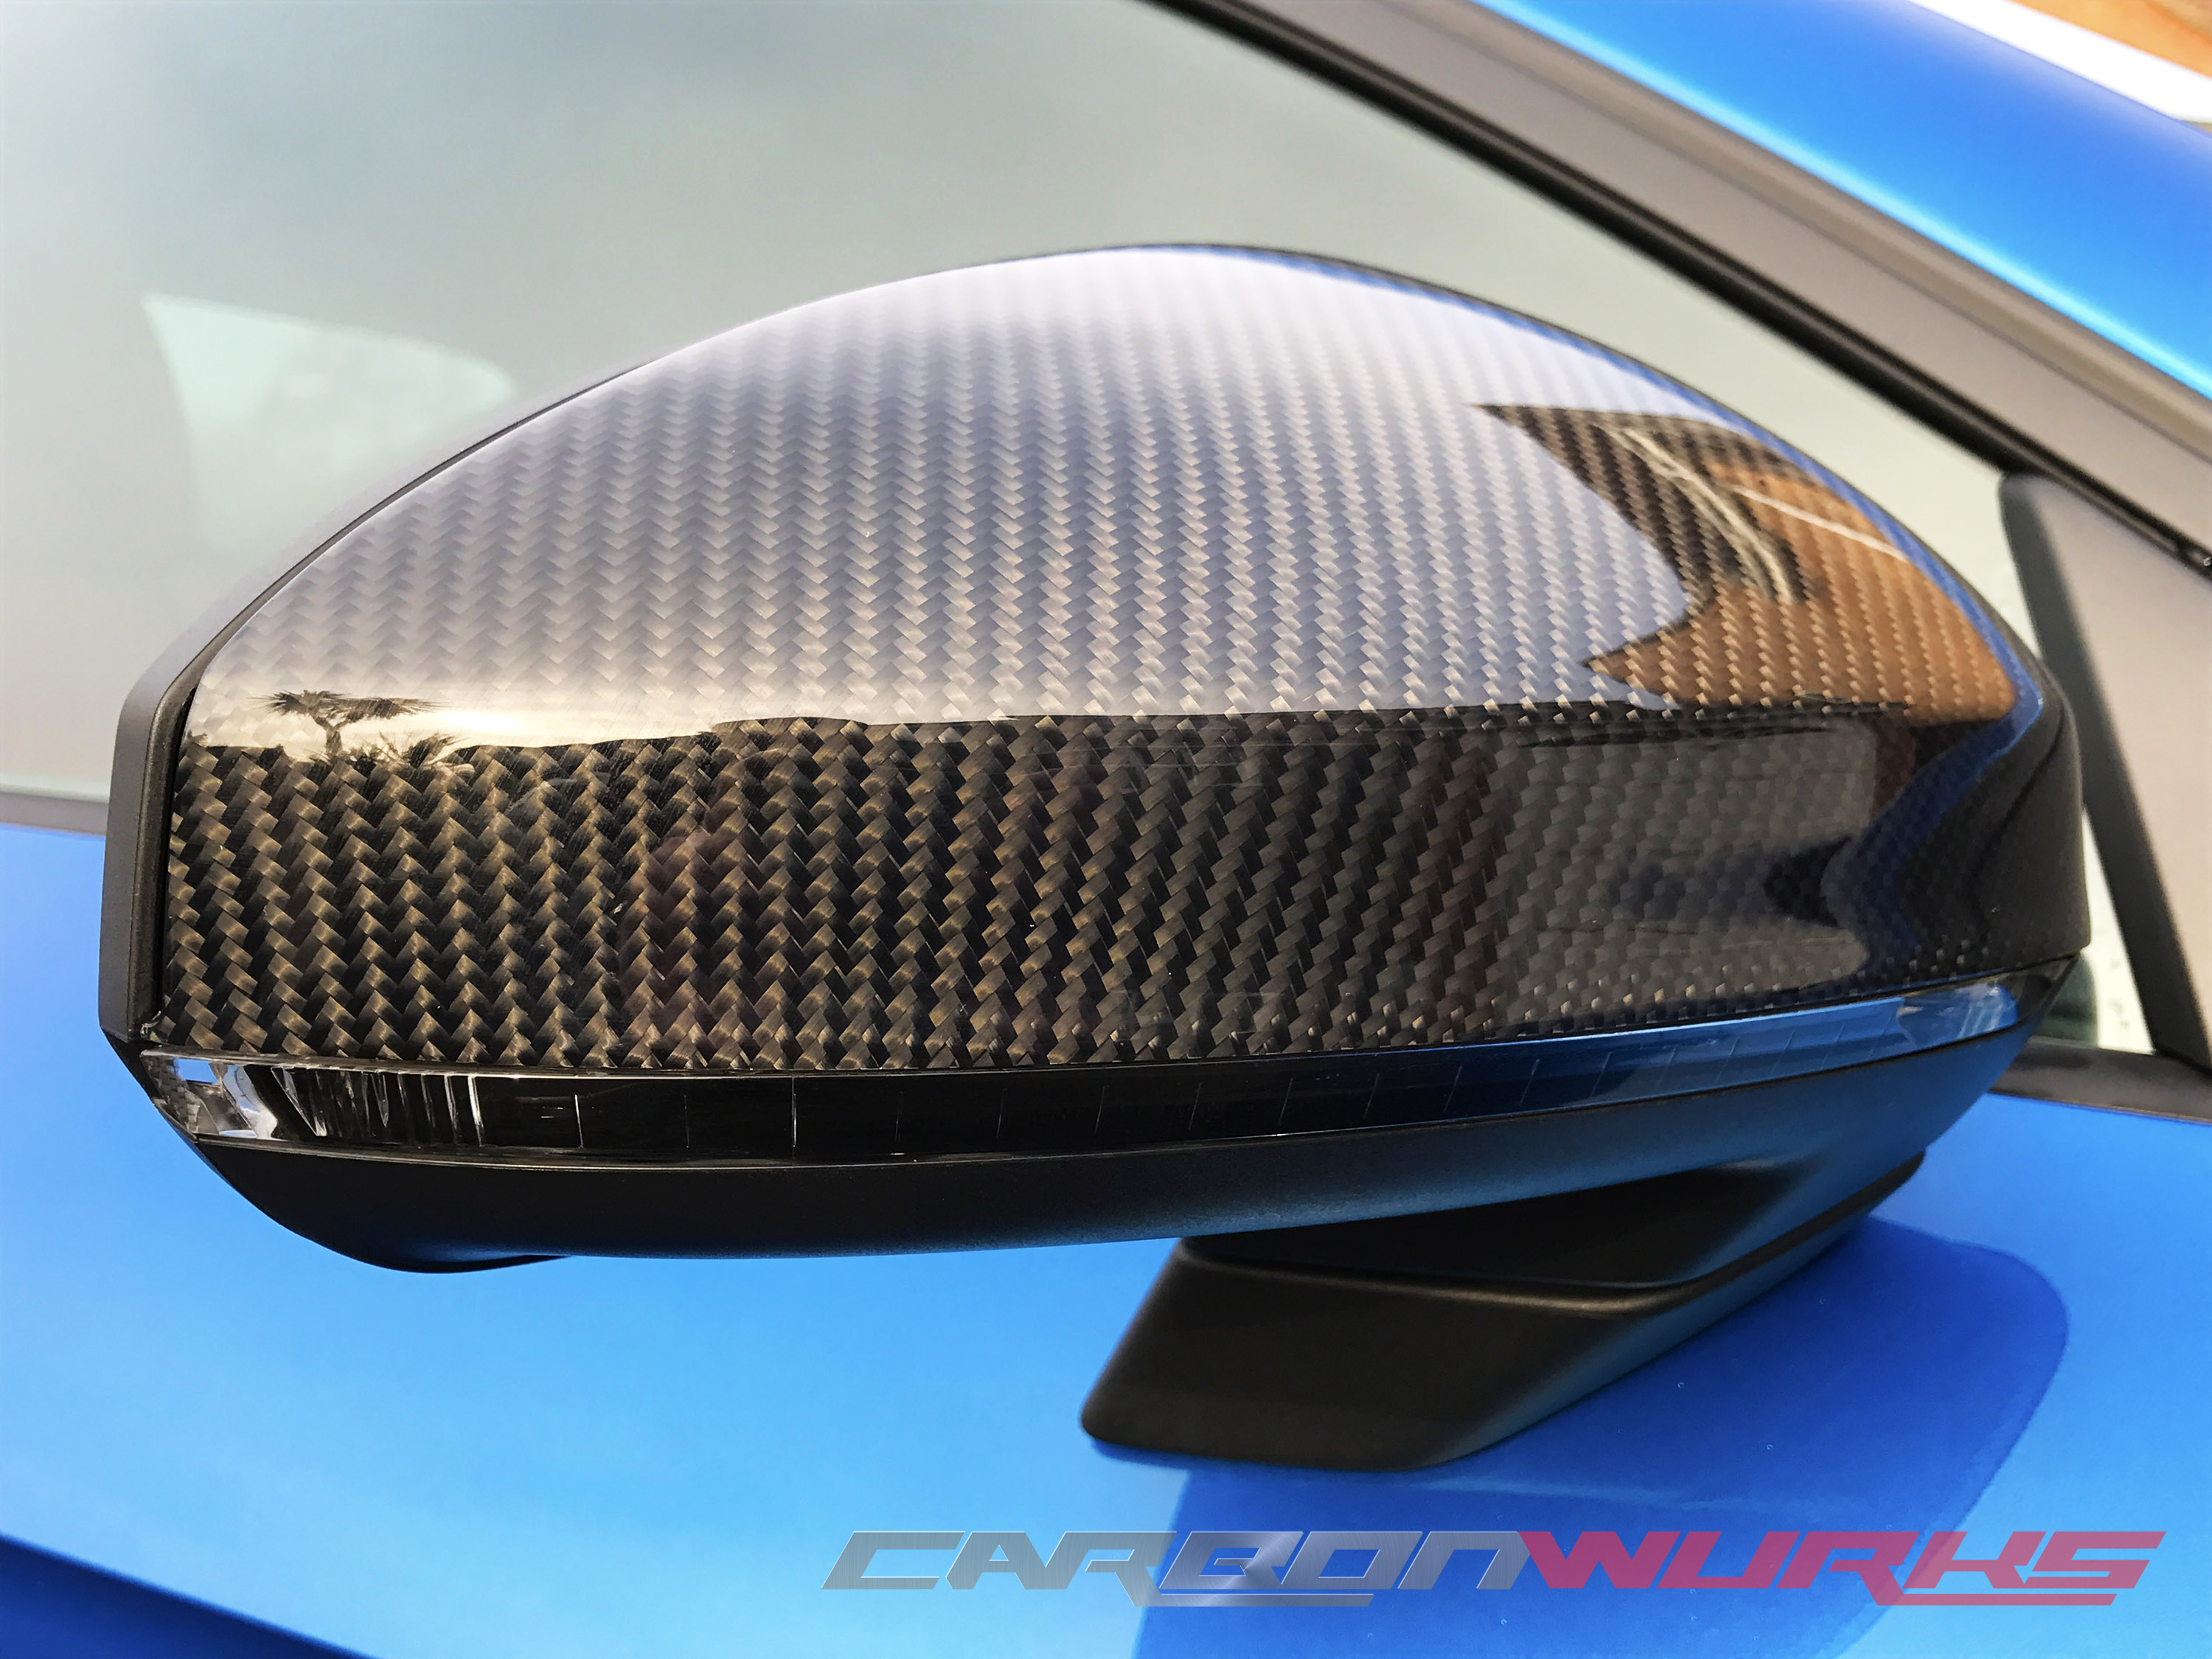 Audi TT/R8 Gloss Carbon Fibre Mirrors - With Lane Assist